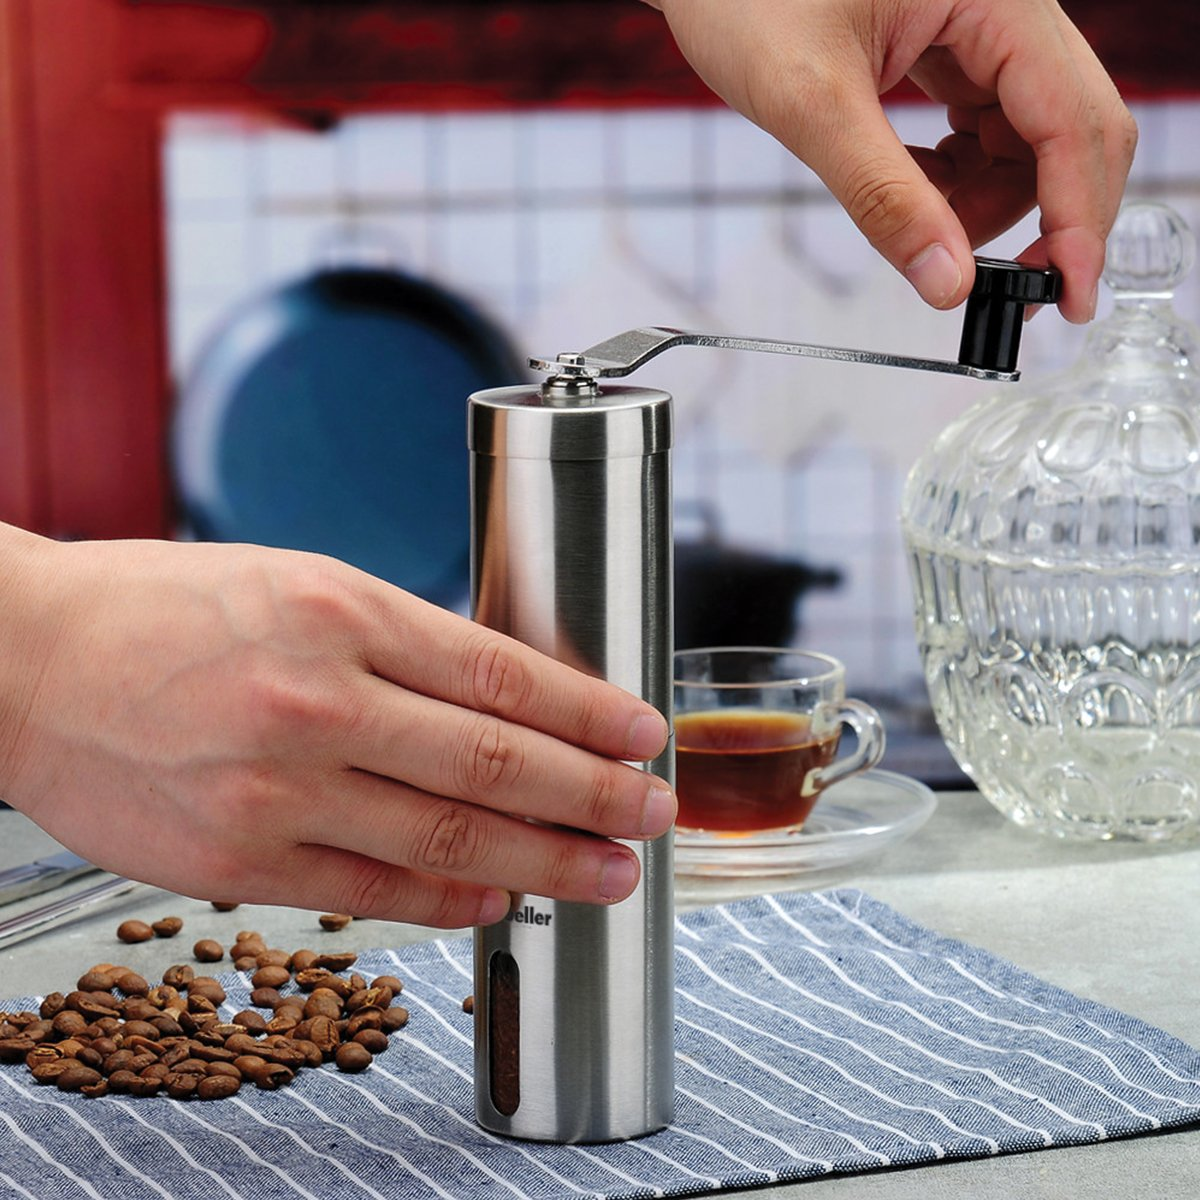 Mueller Ultra-Grind - Strongest and Heaviest Duty Portable Conical Burr Mill, Whole Bean Manual Coffee Grinder for French Press, Turkish, Handheld Mini, K Cup, Brushed Stainless Steel by Mueller Austria (Image #6)